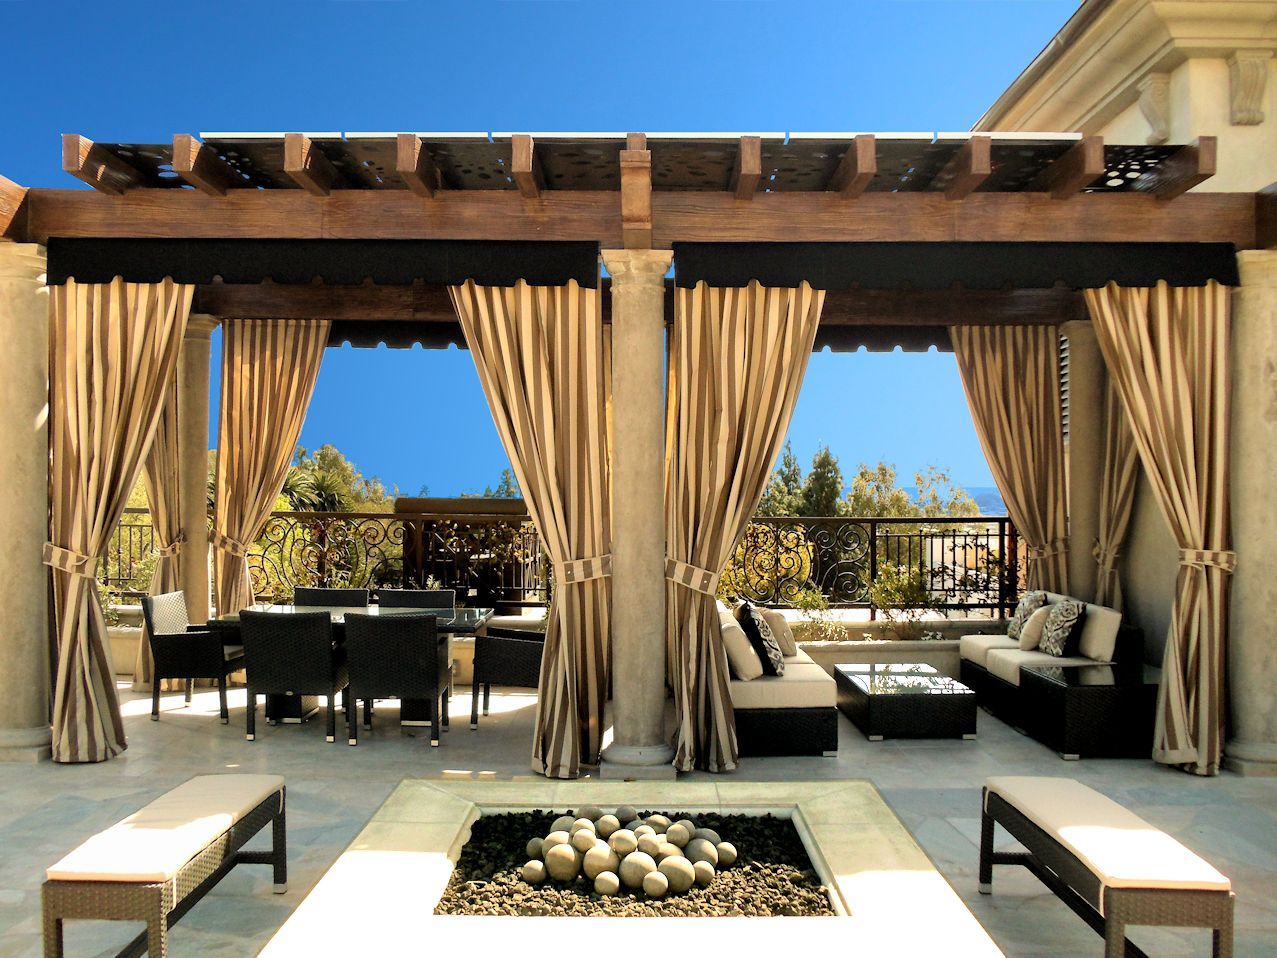 Marvelous Through Patio Curtains, You Can Decorate Your Home